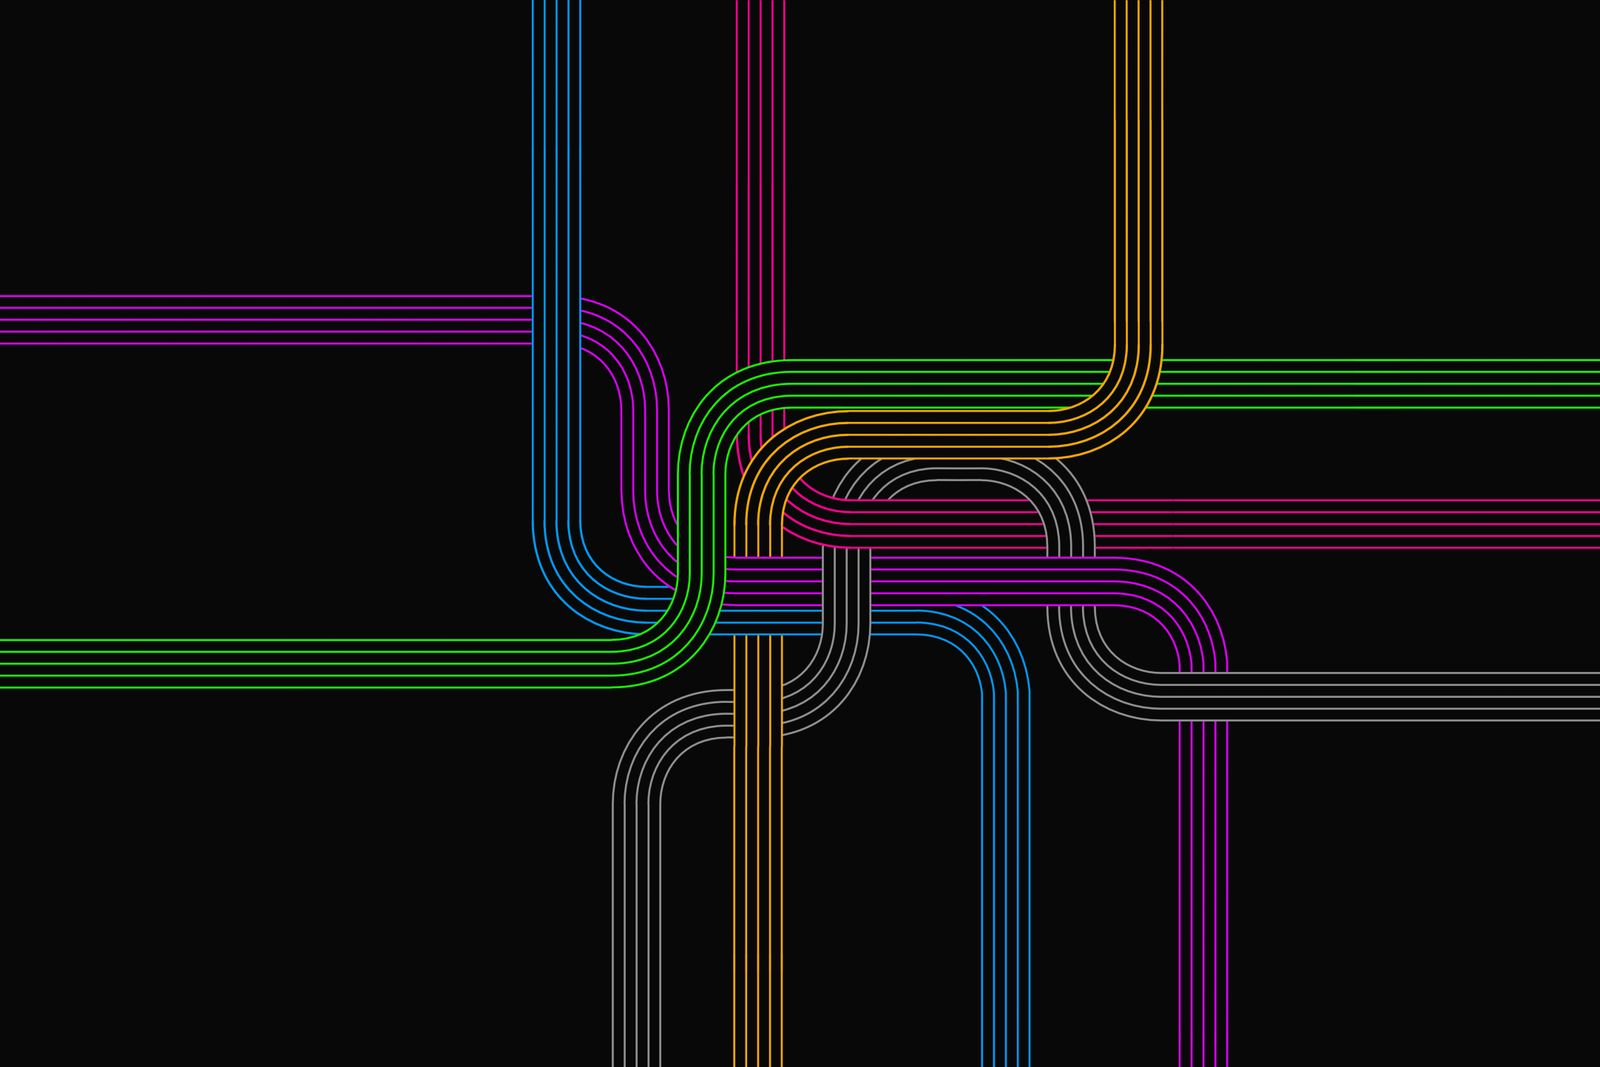 Colorful group of lines intertwined in a knot.